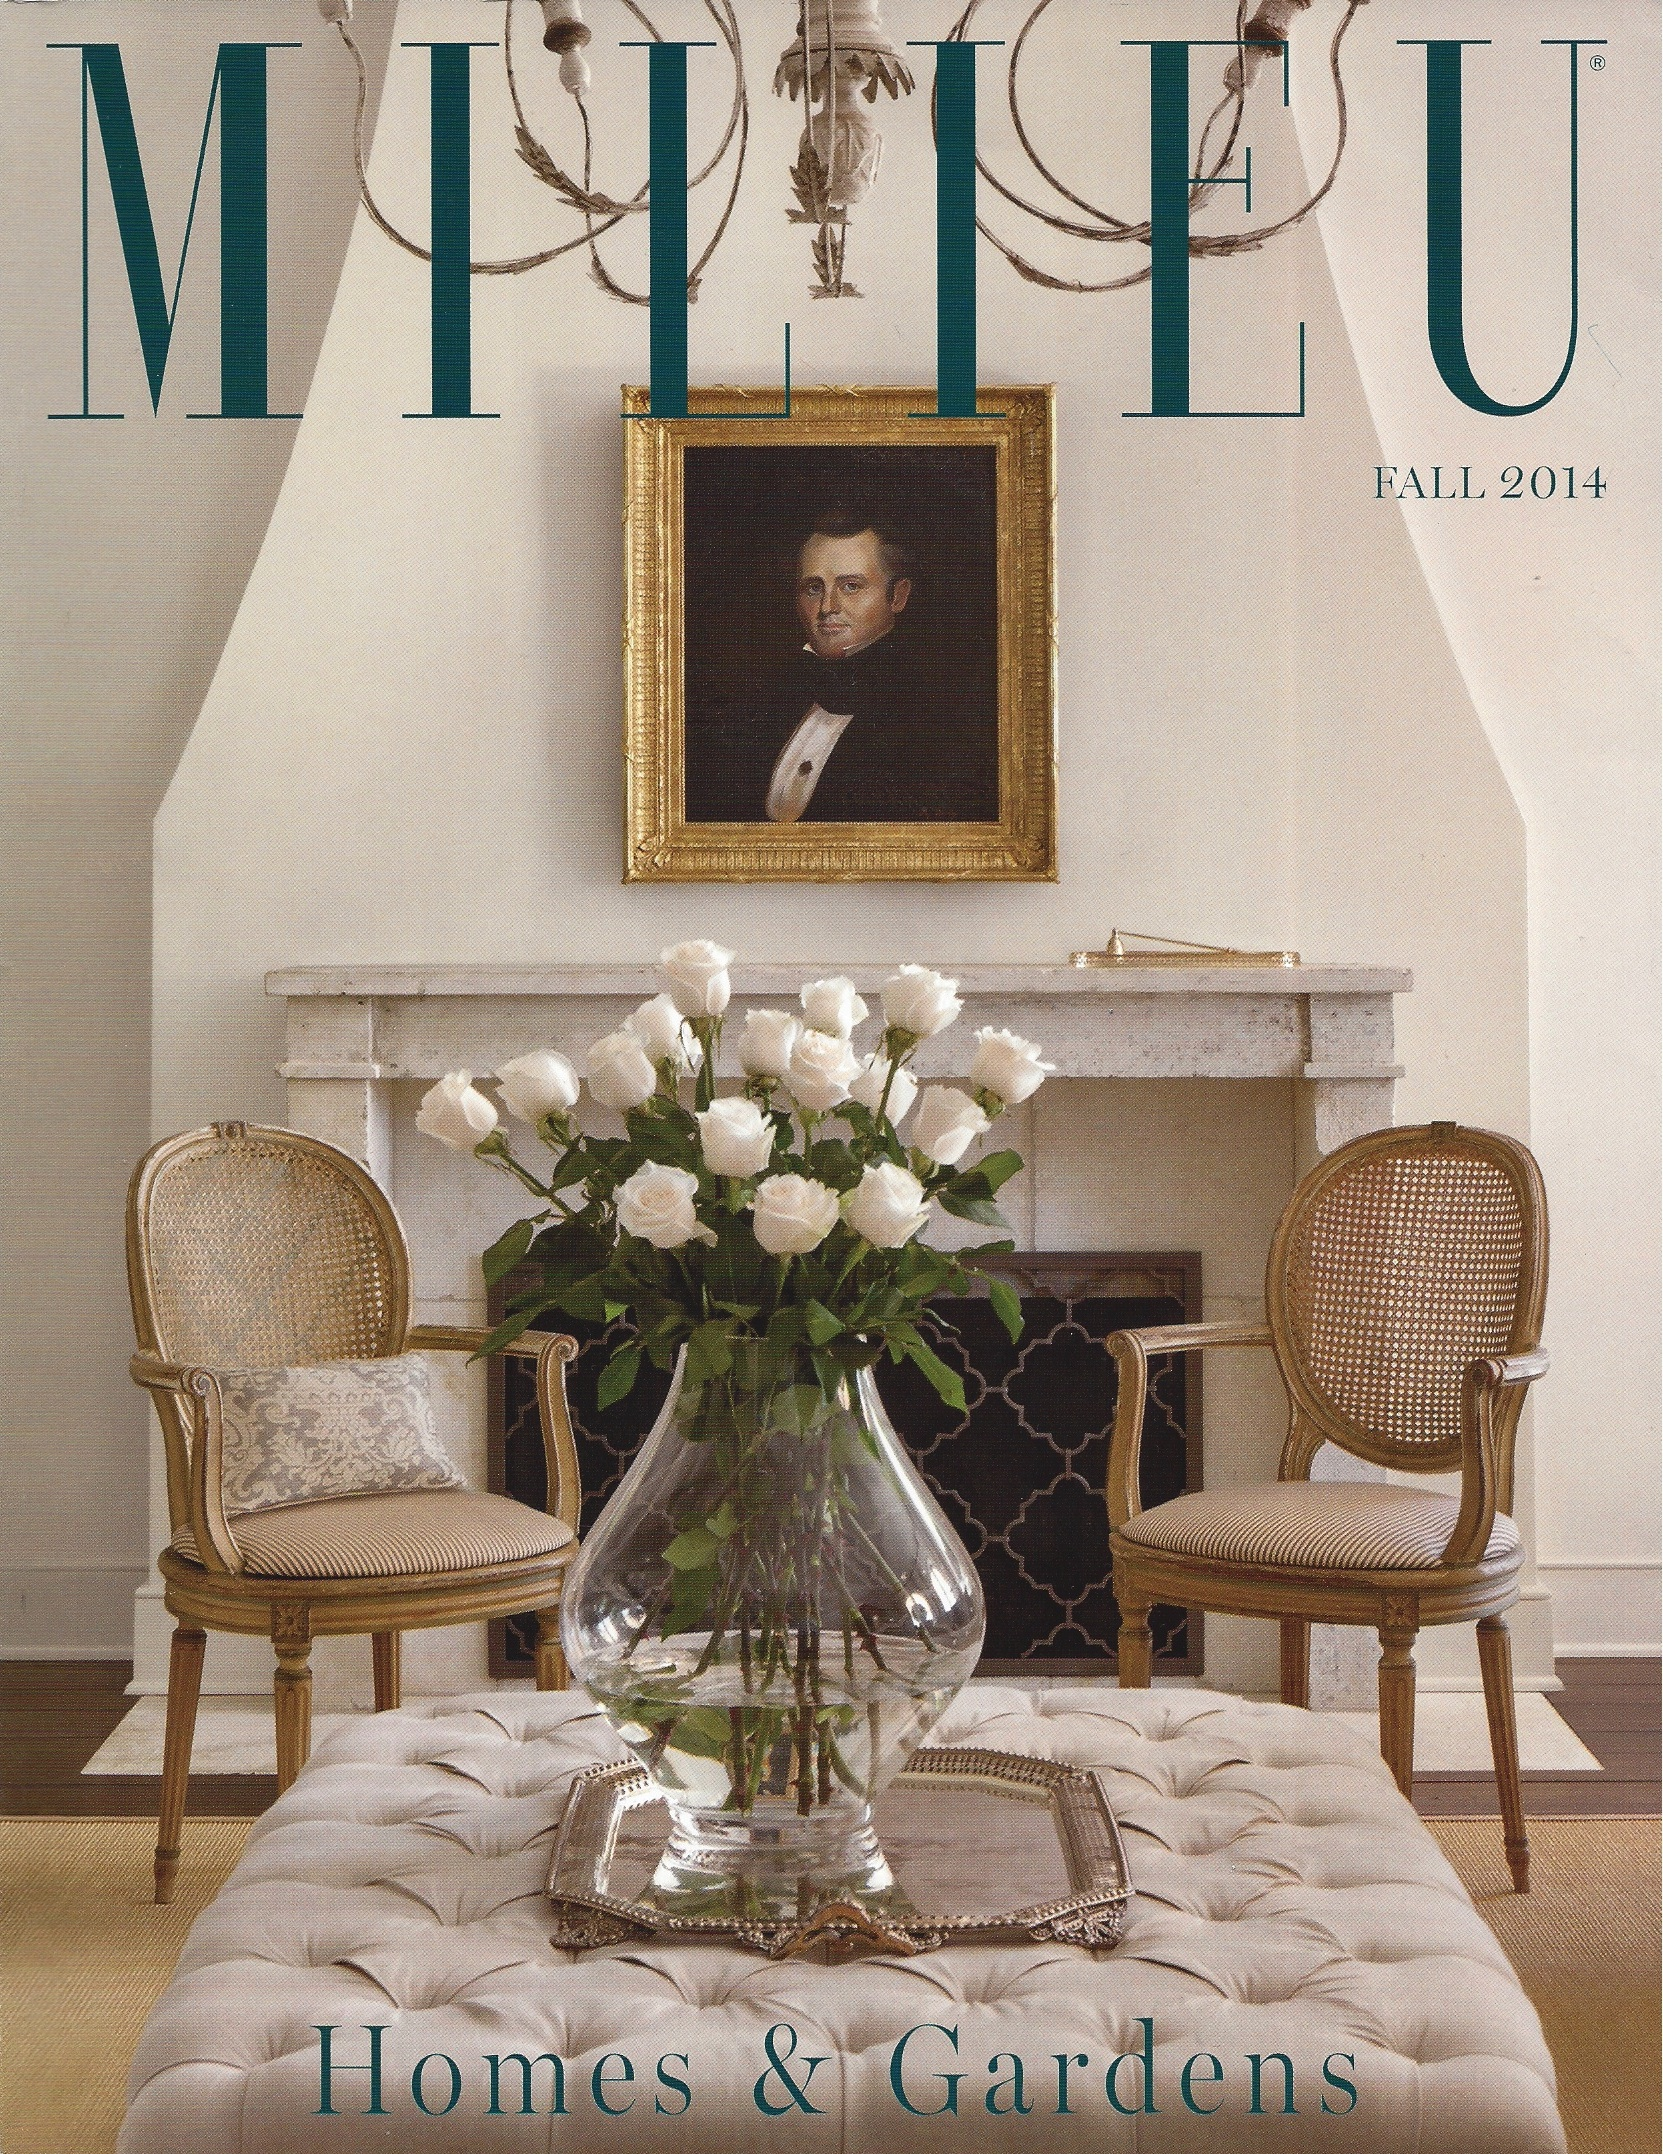 MILIEU Is A Quarterly That Features Homes And Gardens From Around The World Her Keen Eye Quest To Find Designers Who Have Yet Be Published